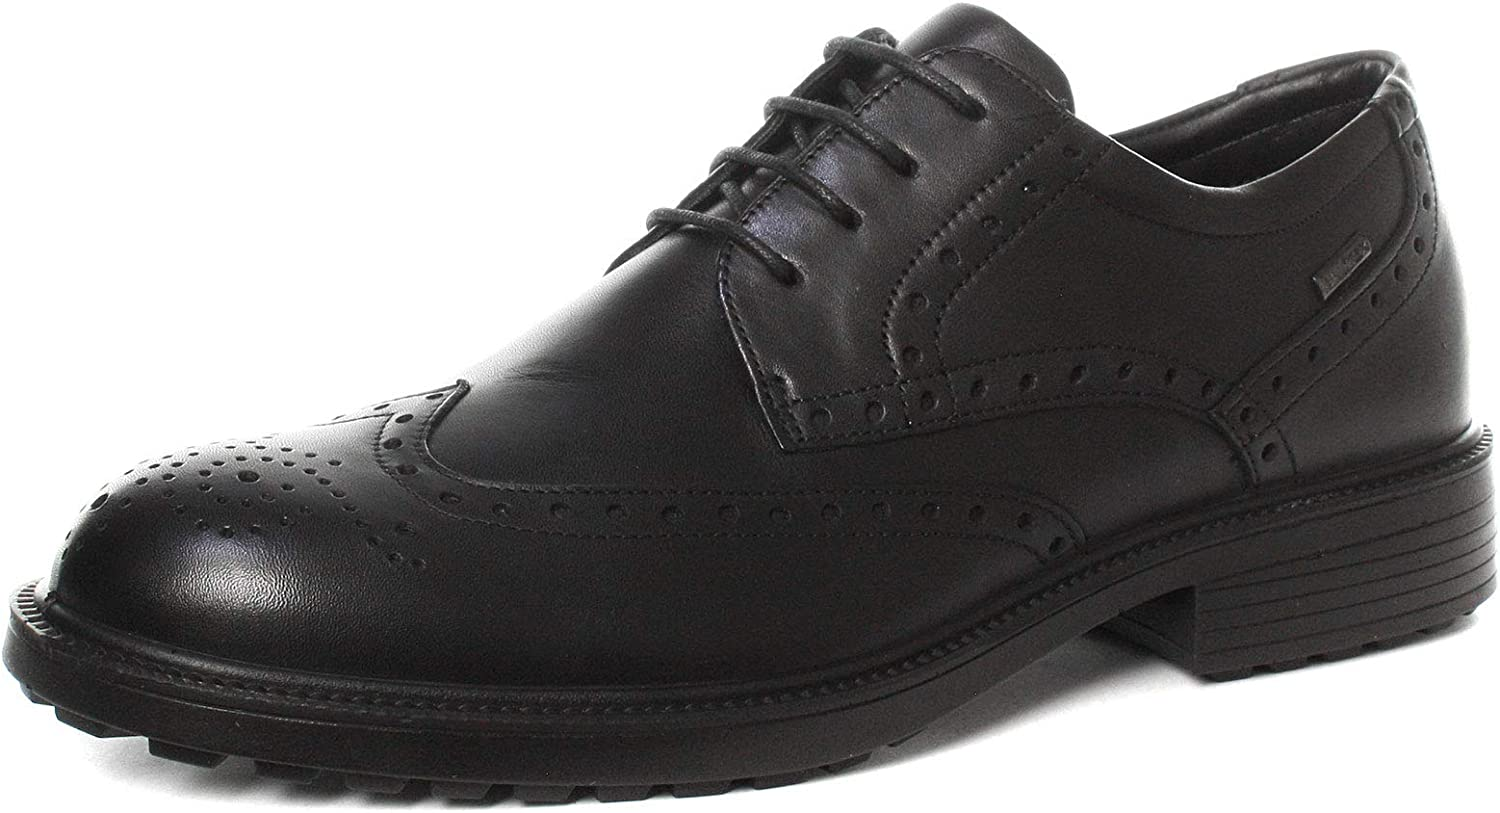 Imac Men's Gibson Imactex Waterproof Brogue Leather Lace-Up shoes M 9582A